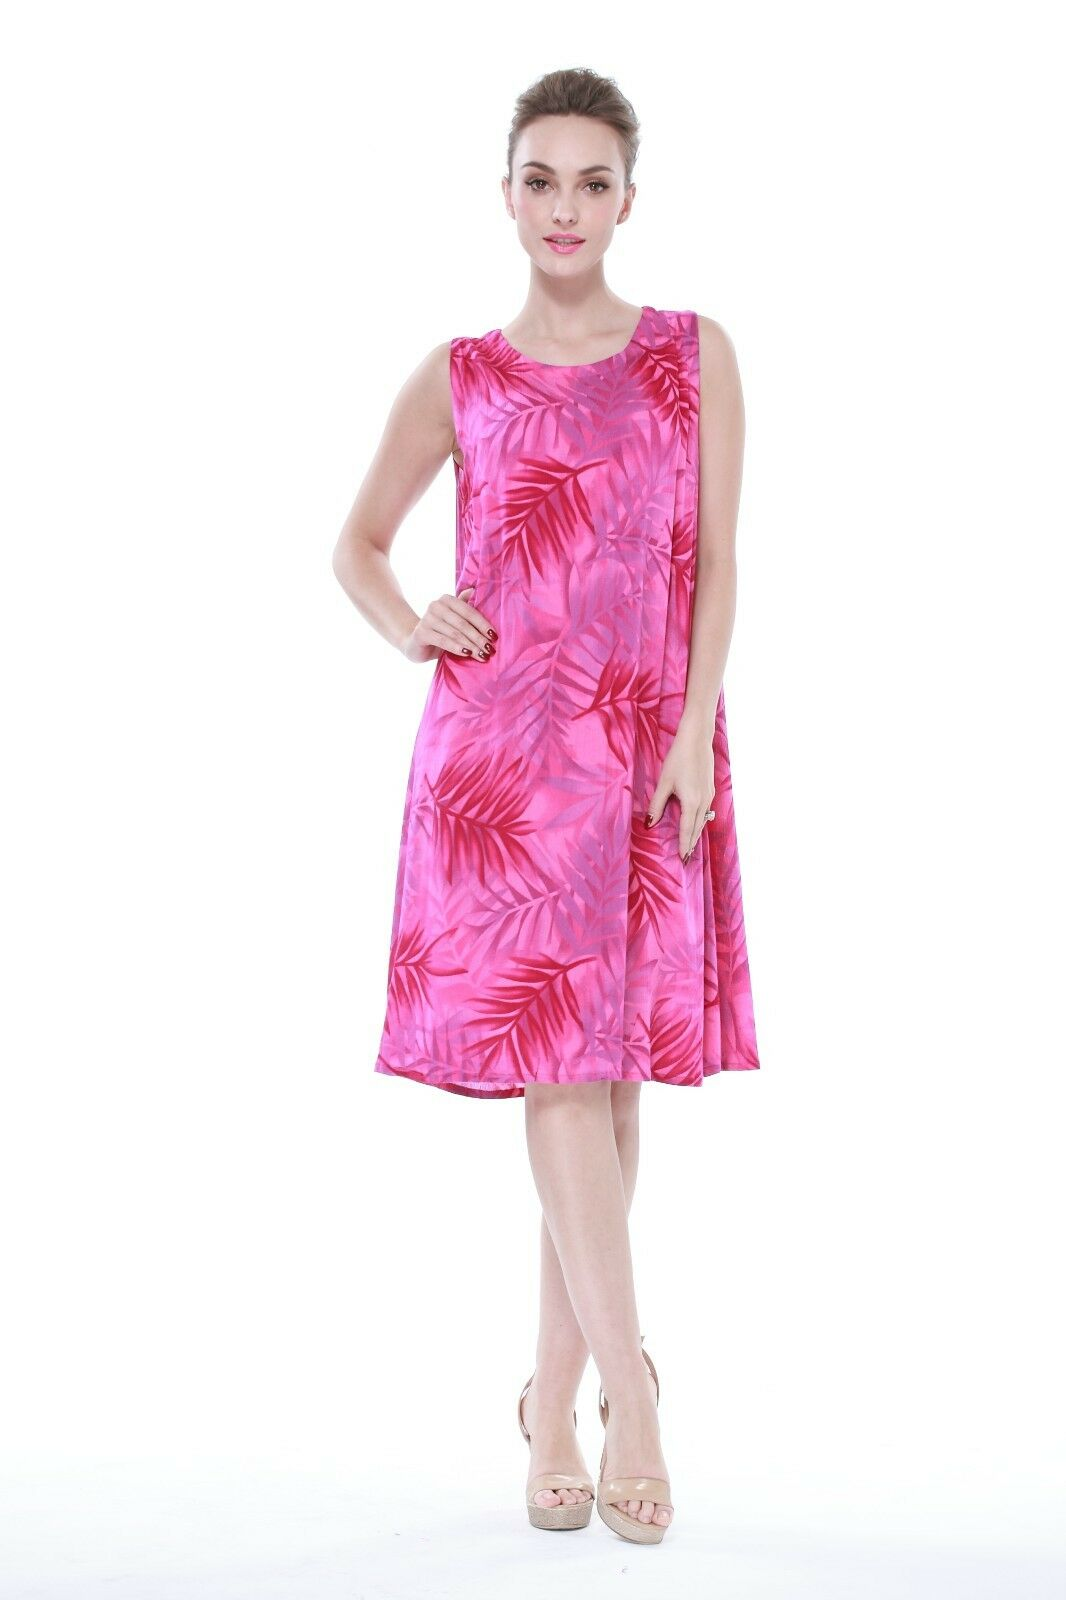 Hawaiian Luau Dress Cruise ALine Waterlily Crinkle Plus Size Floral Pink  Leaf